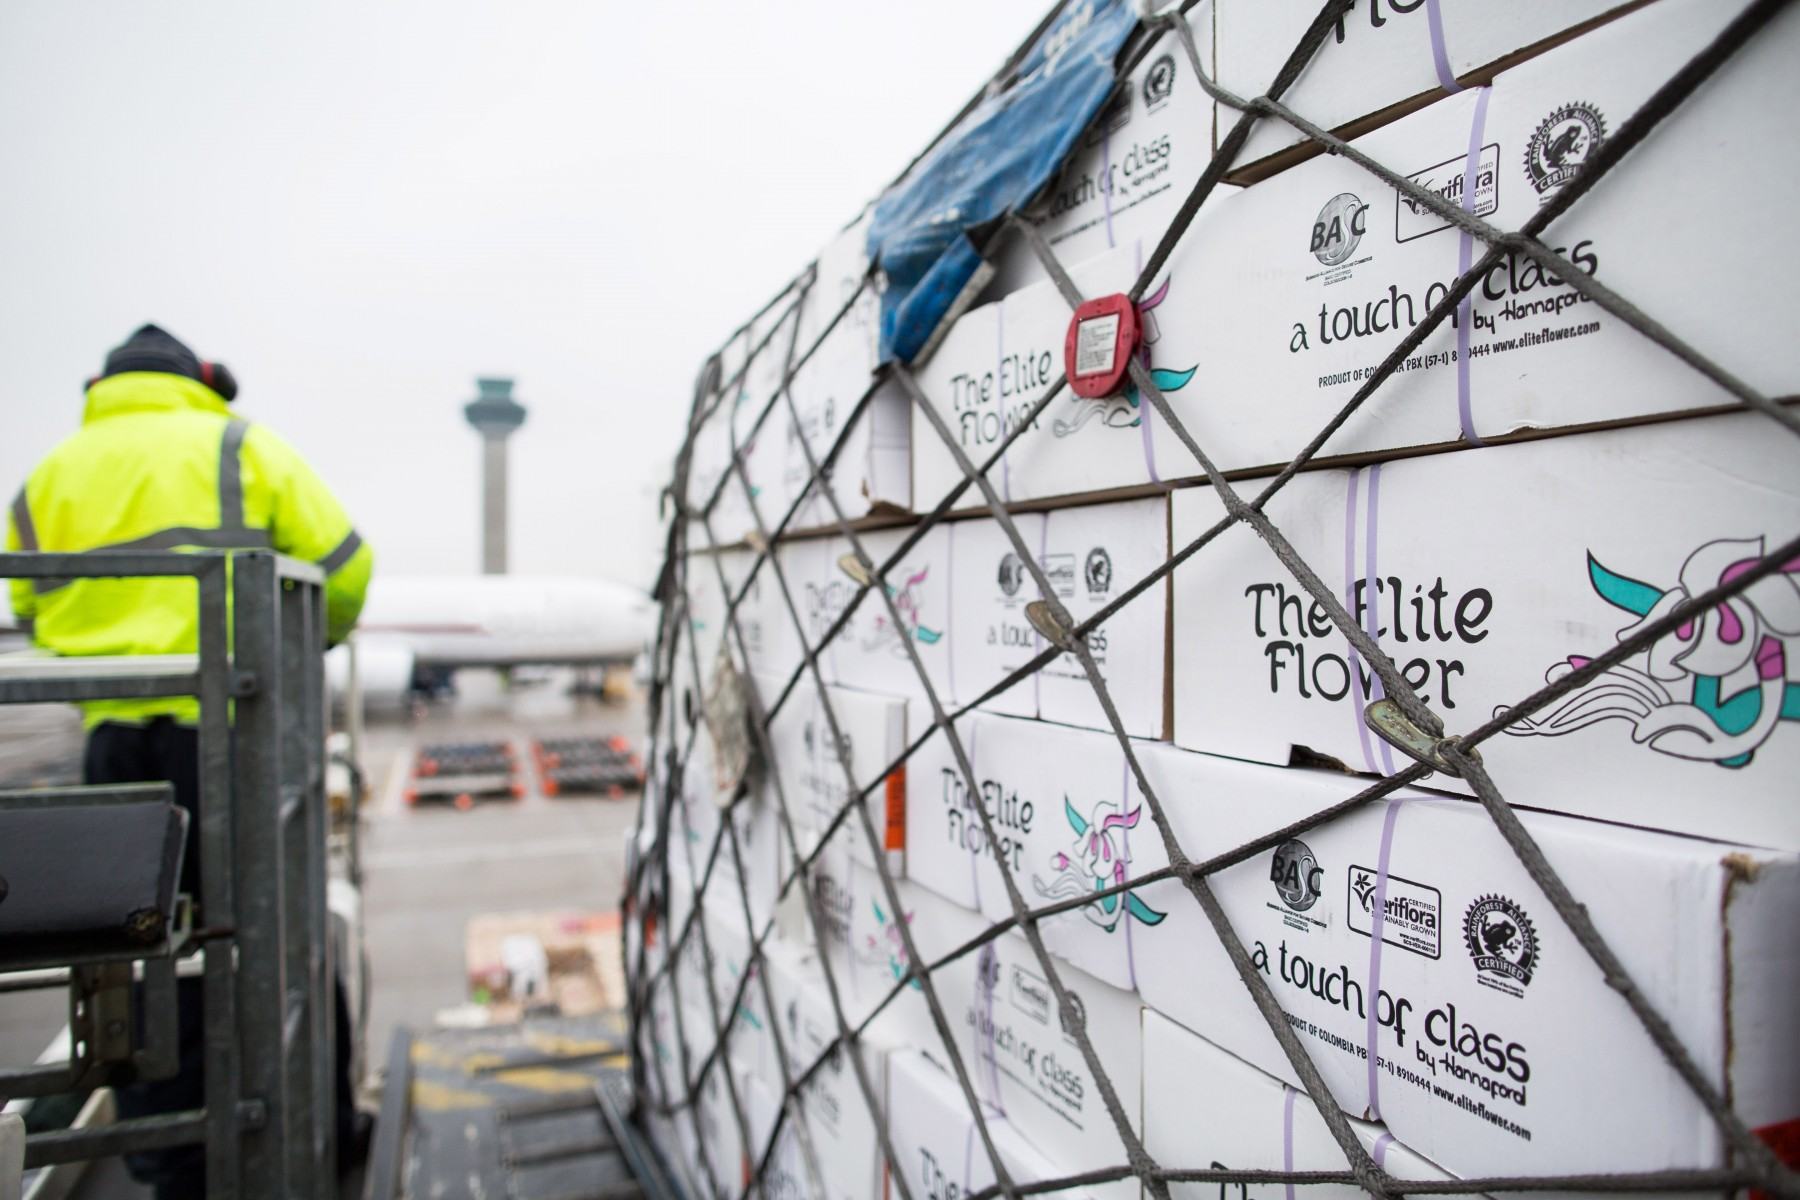 Over 1000 tonnes of flowers arrive at stansted airport for mothers day kristyandbryce Choice Image